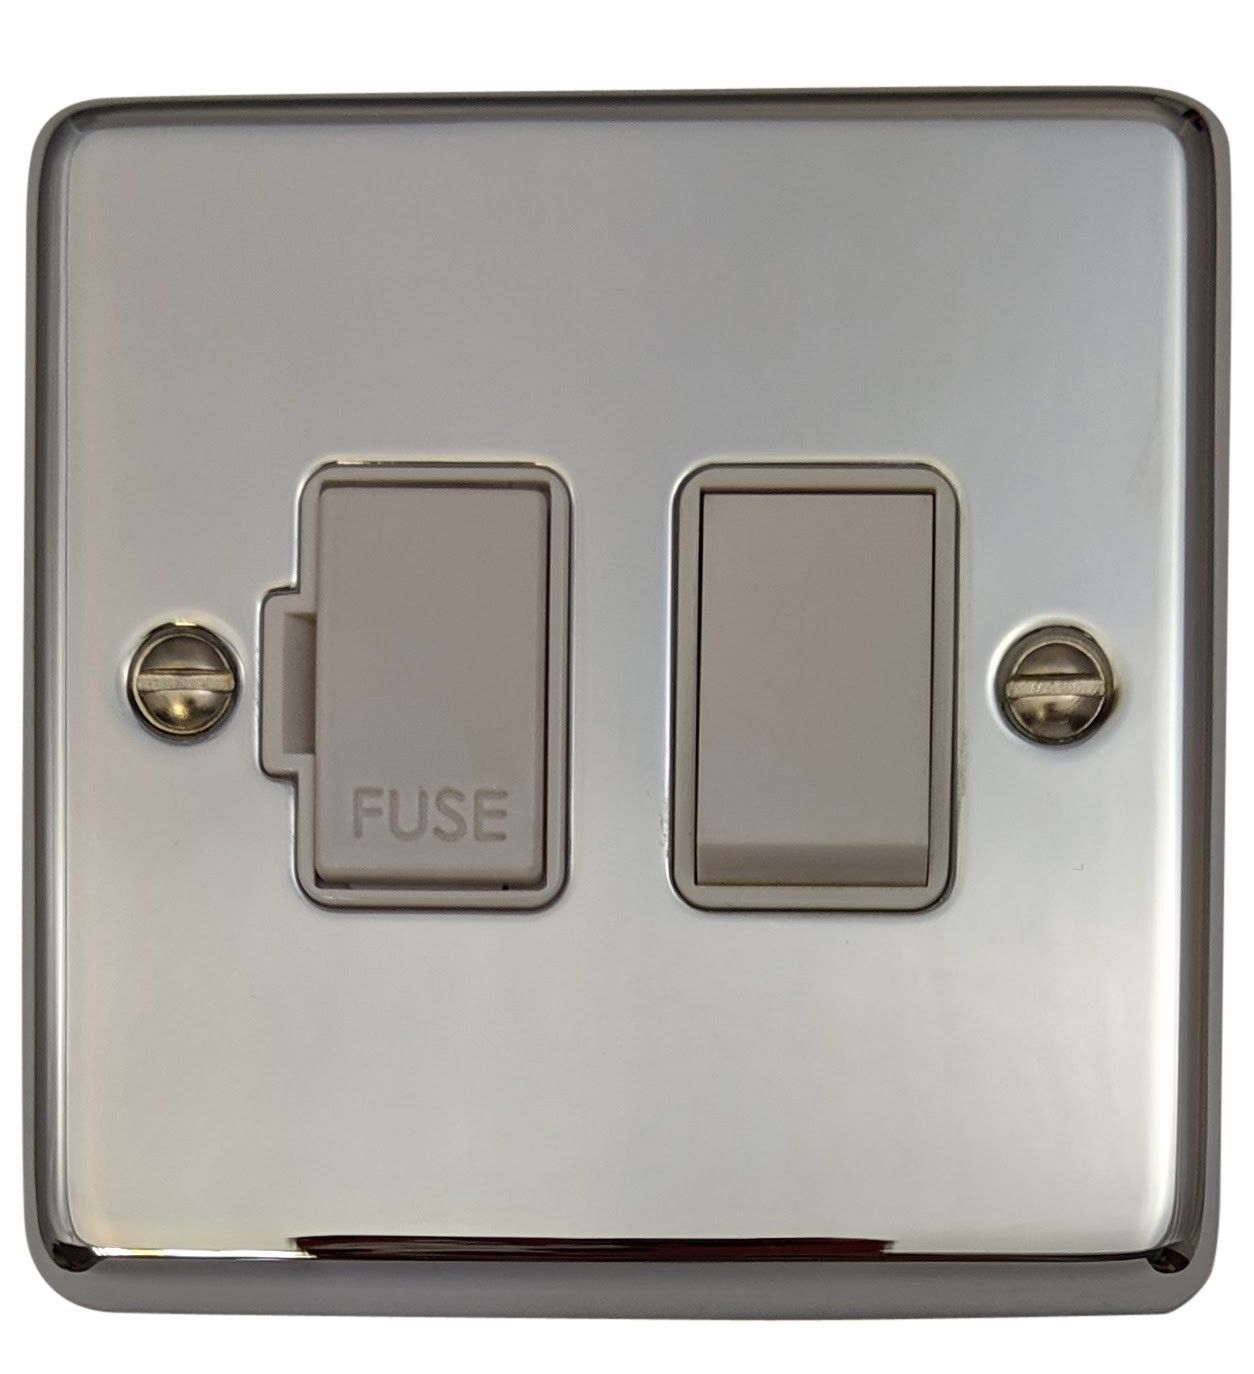 G&H CC57W Standard Plate Polished Chrome 1 Gang Fused Spur 13A Switched